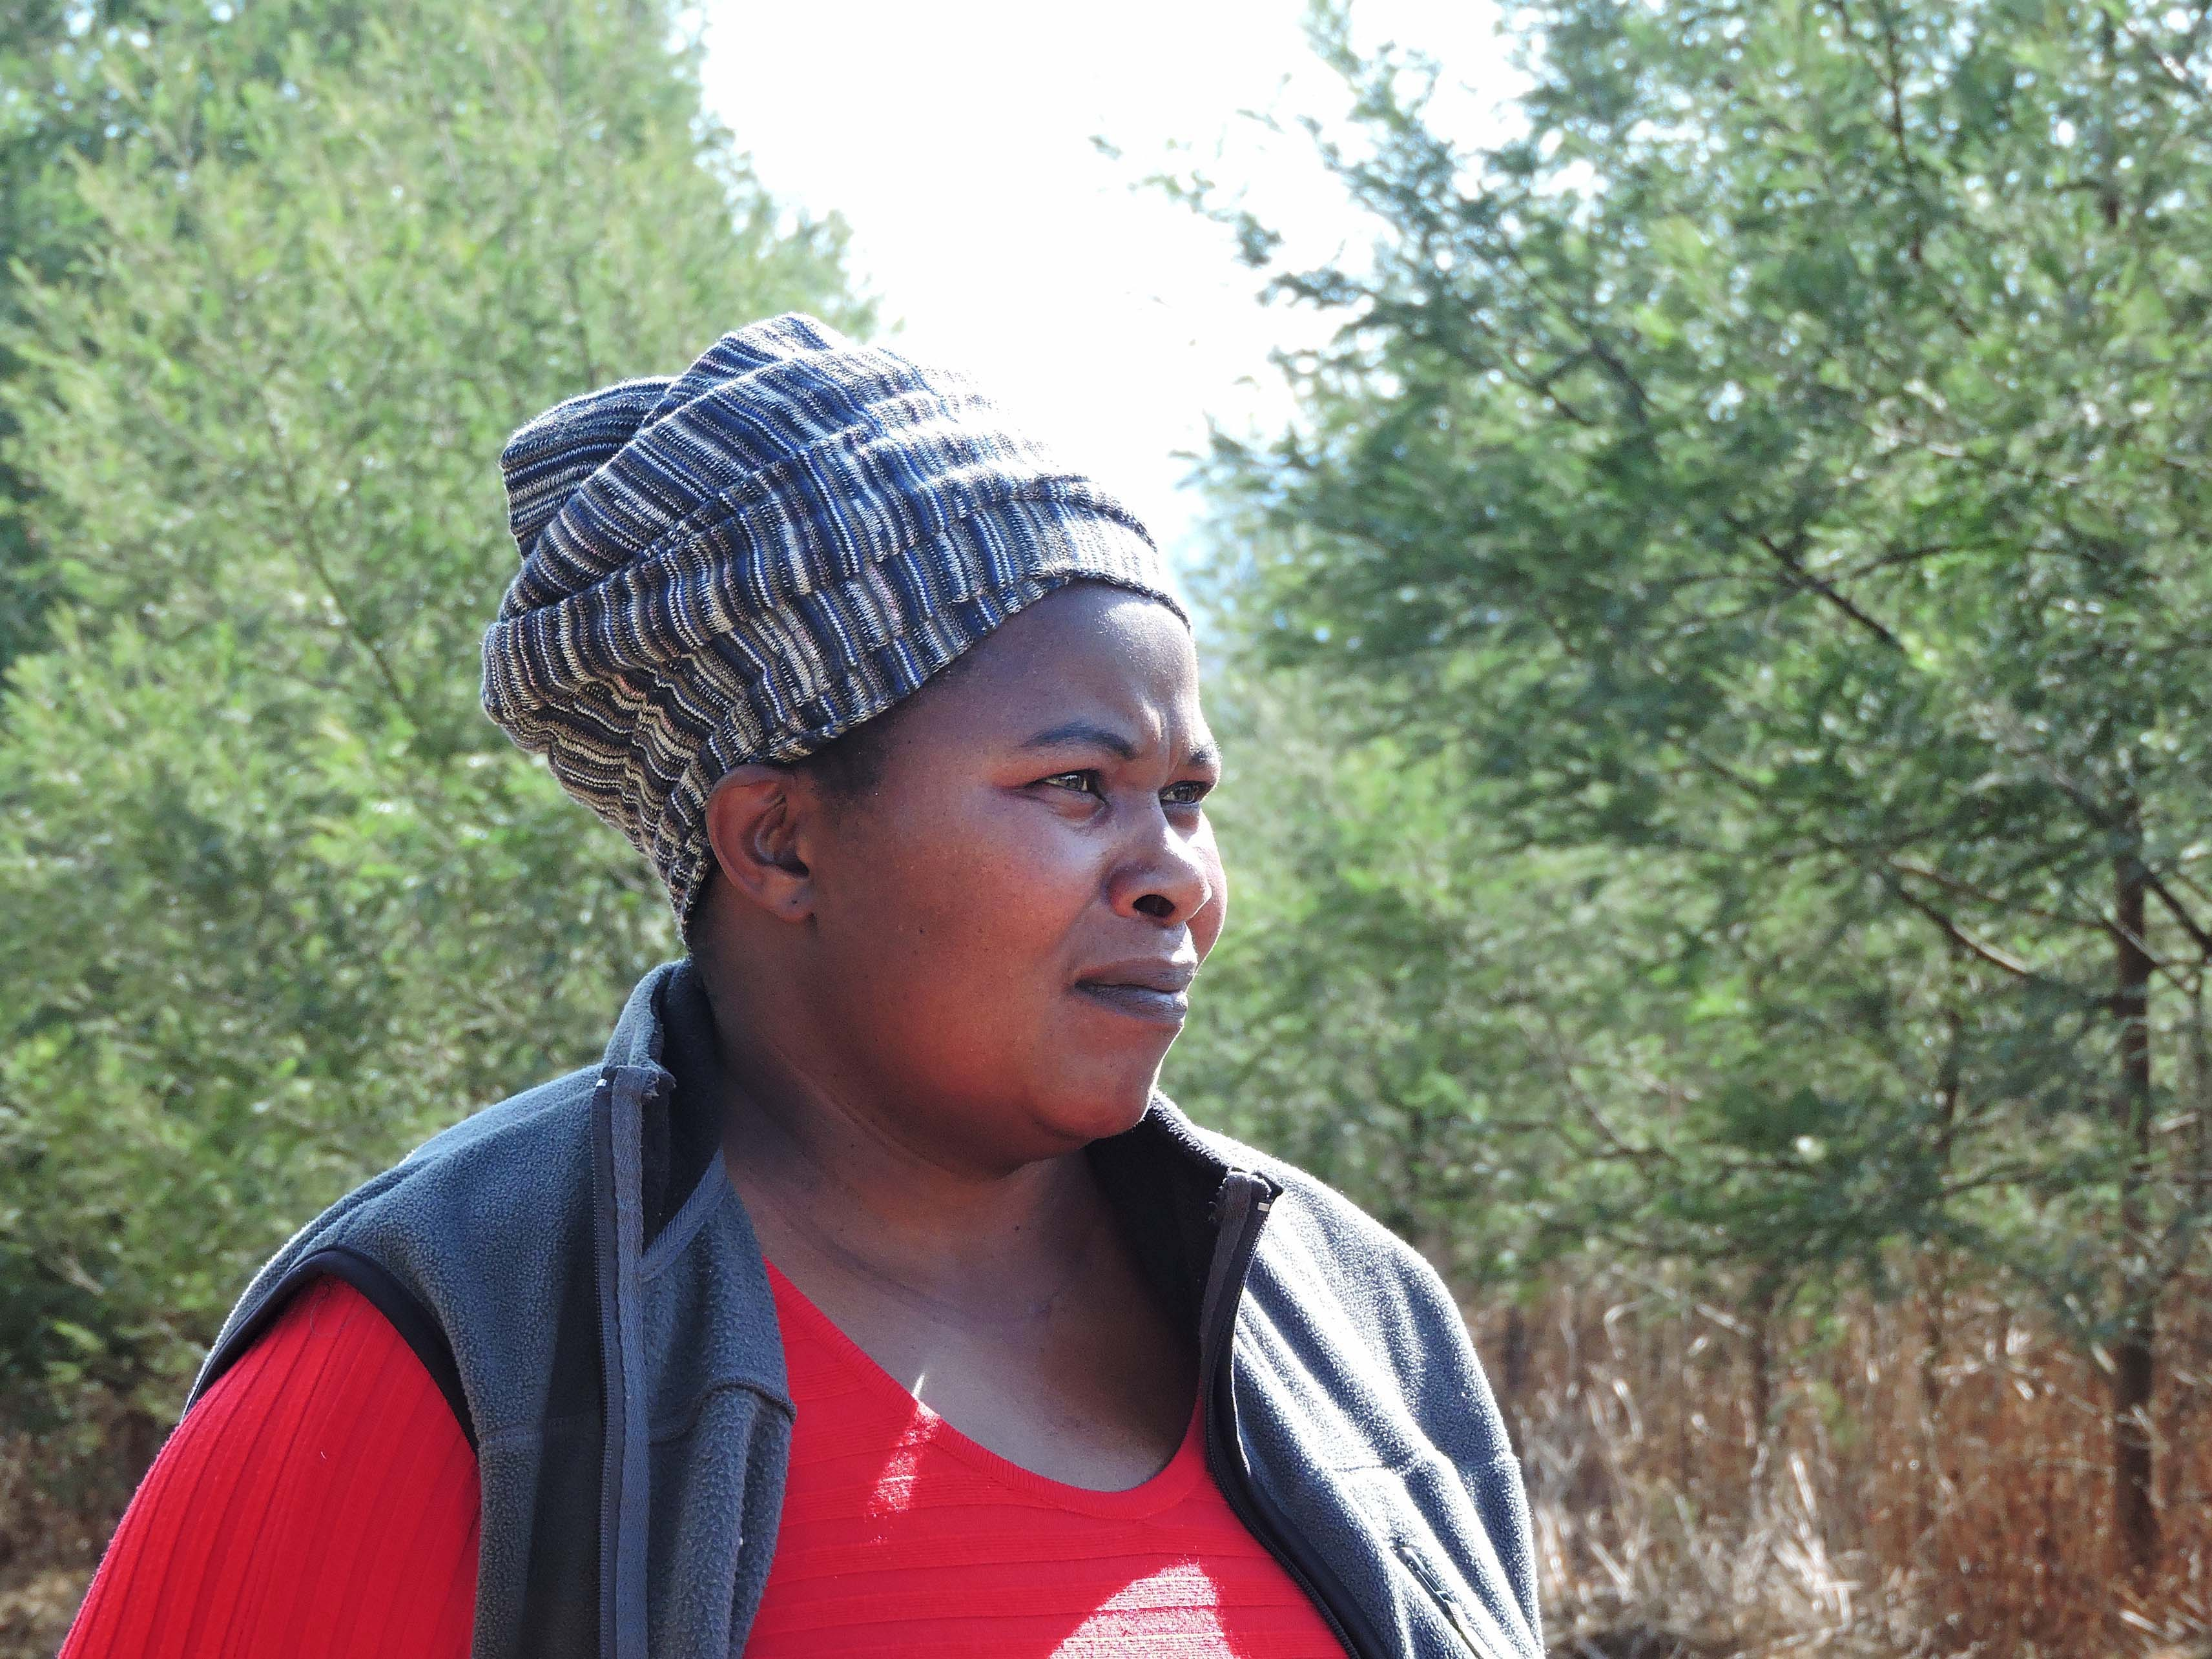 Buyisile Maureen Mdunge - Umvoti Property Investment & NCT Tree Farmer of the Year 2019